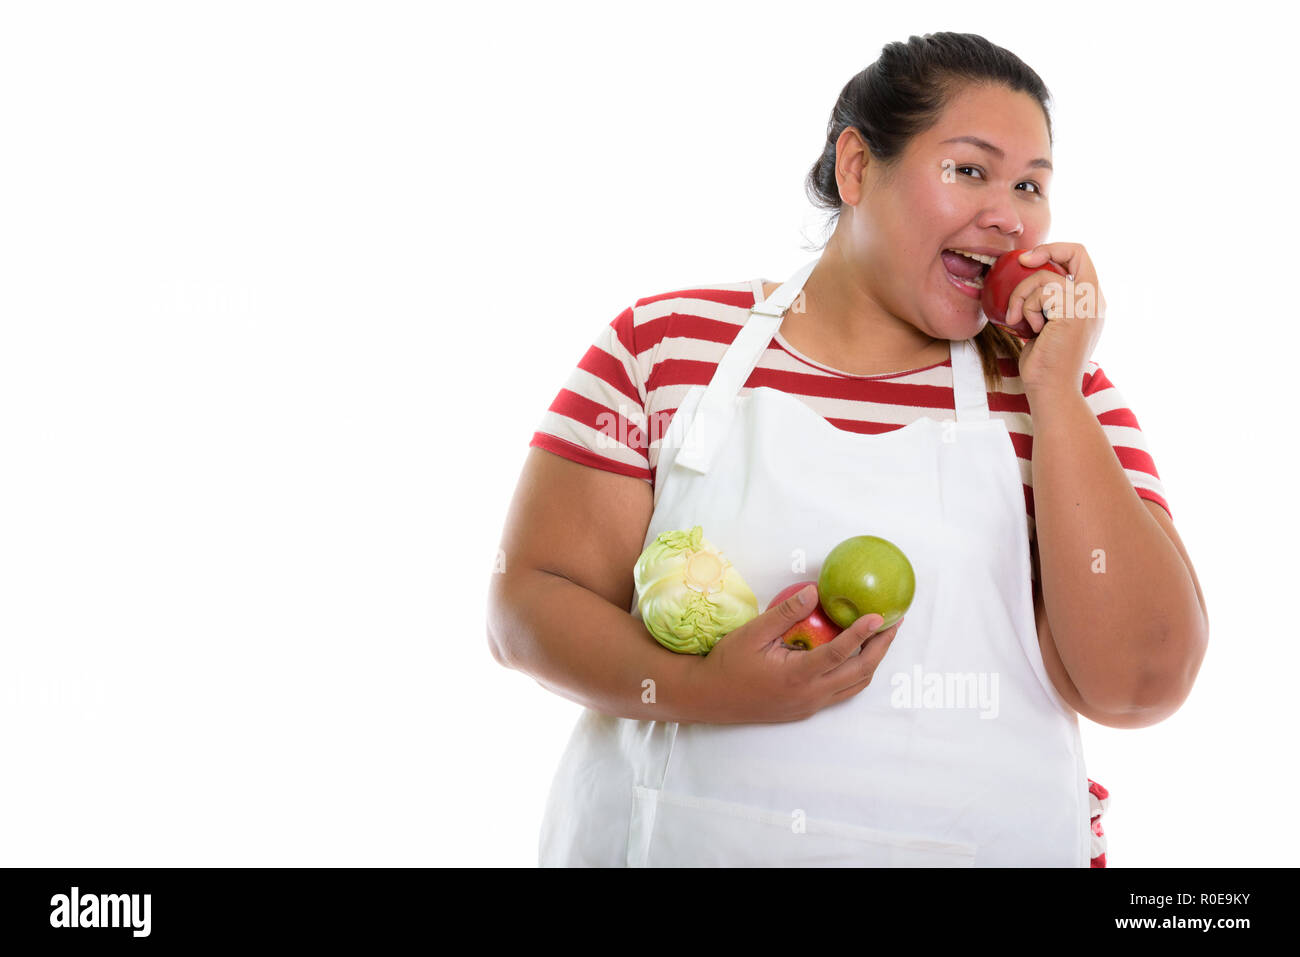 Studio shot of young happy fat Asian woman smiling and eating re - Stock Image